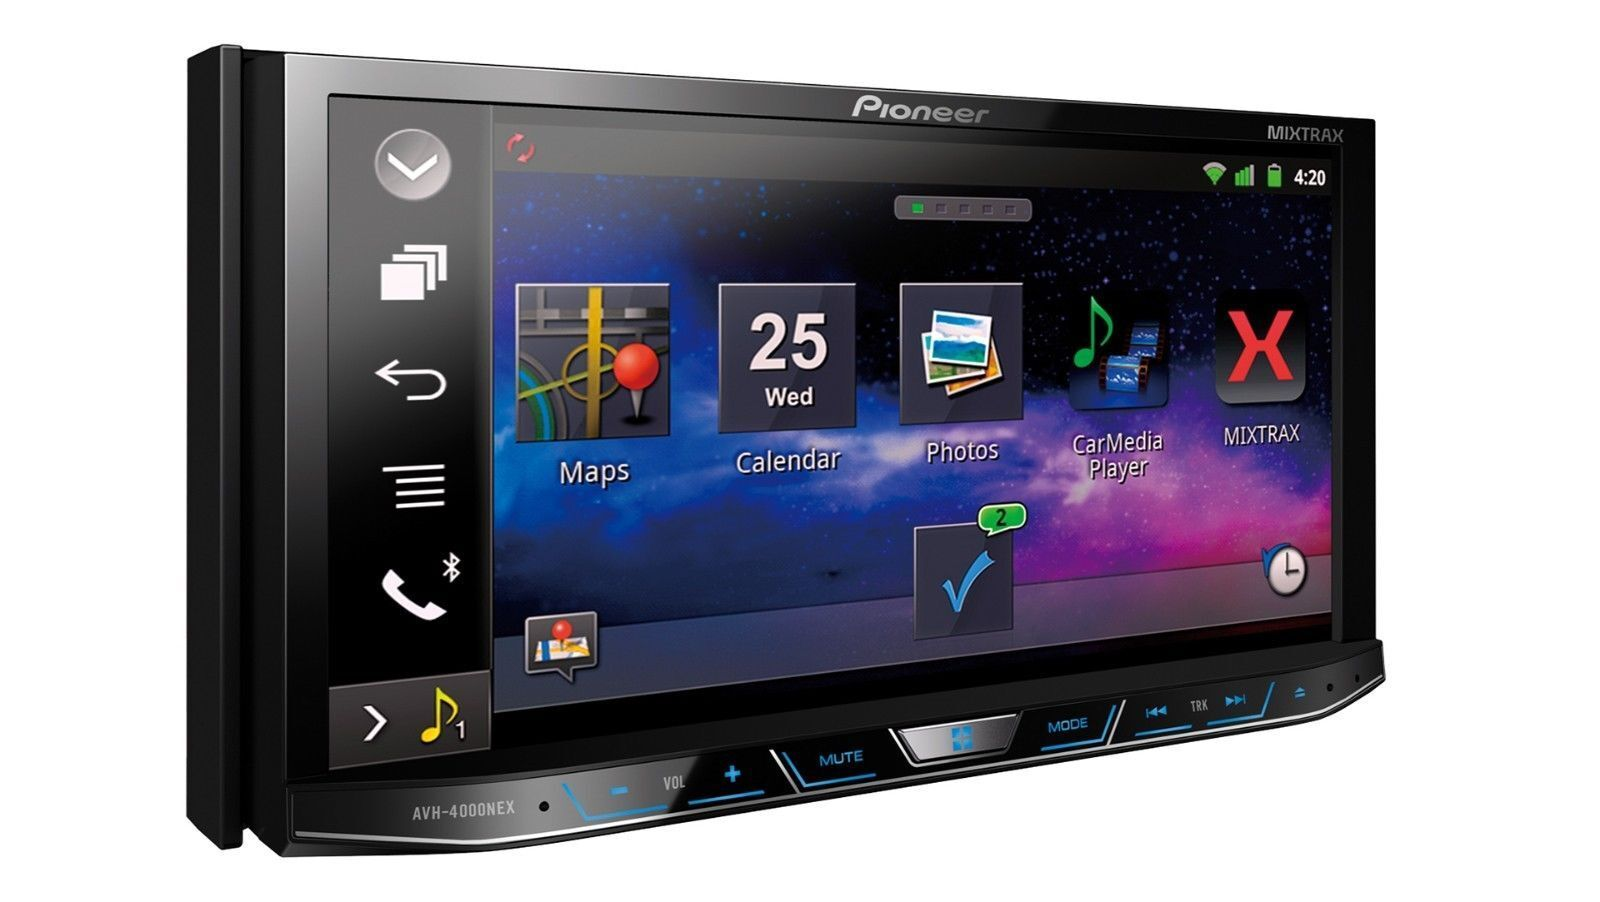 Top 10 touch screen car stereos 1 pioneer avh 4000nex pioneer avh 4000nex